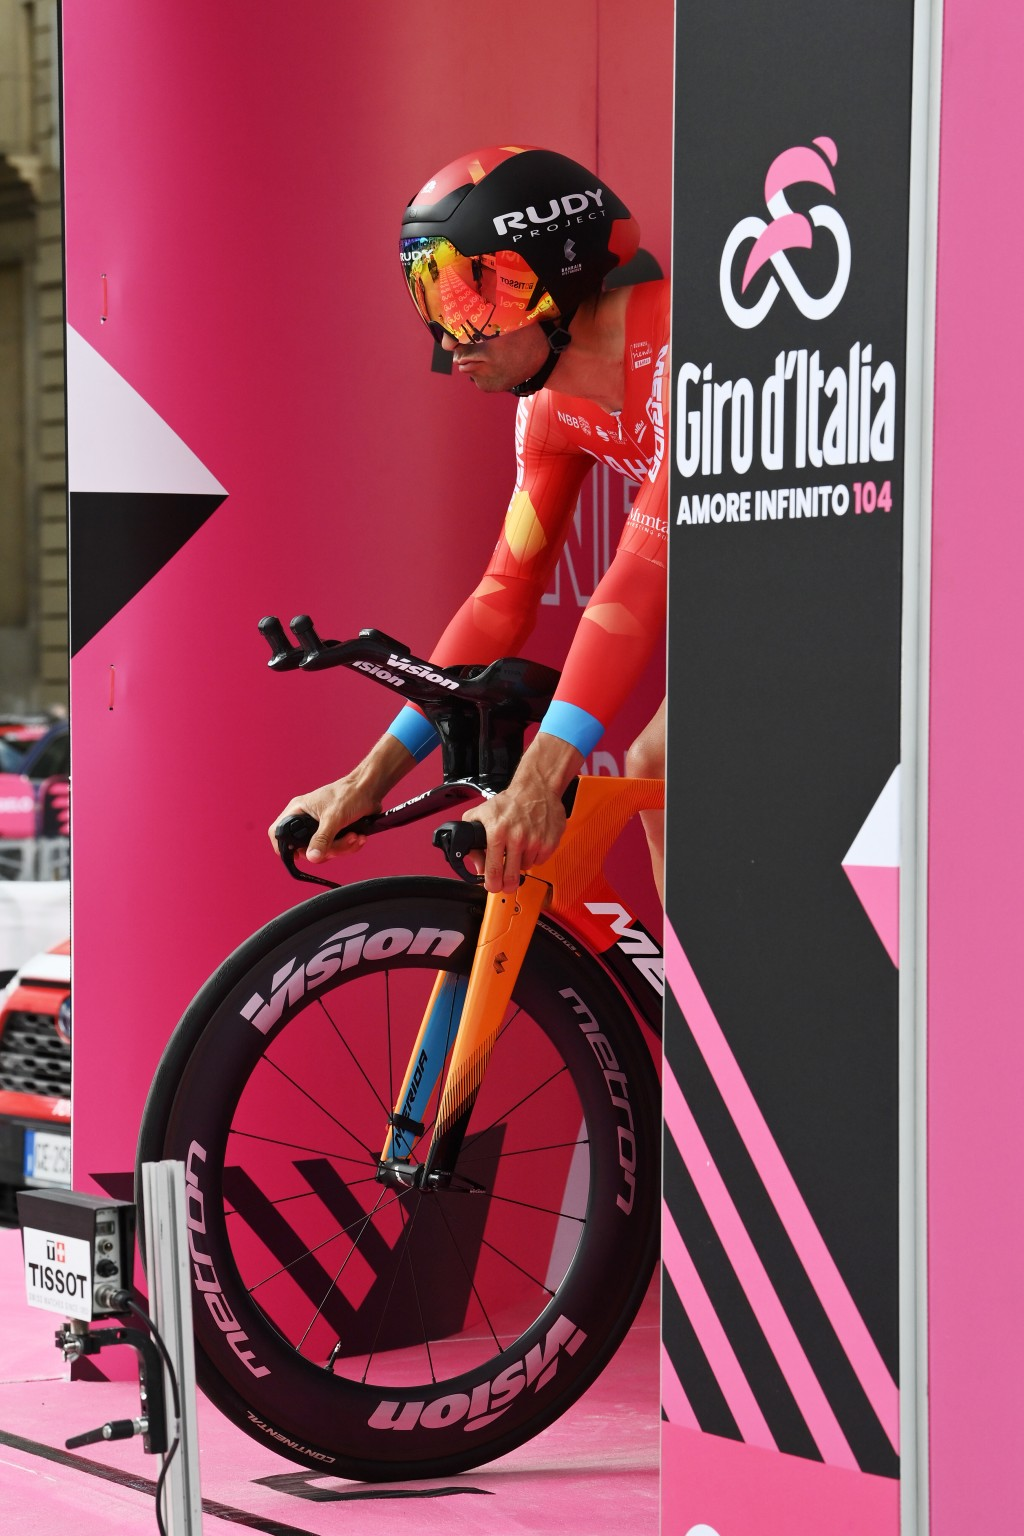 Mikel Landa prepares to start the opening stage of the Giro d'Italia cycling race, an individual time trial in Turin, Italy, Saturday, May 8, 2021. (G...